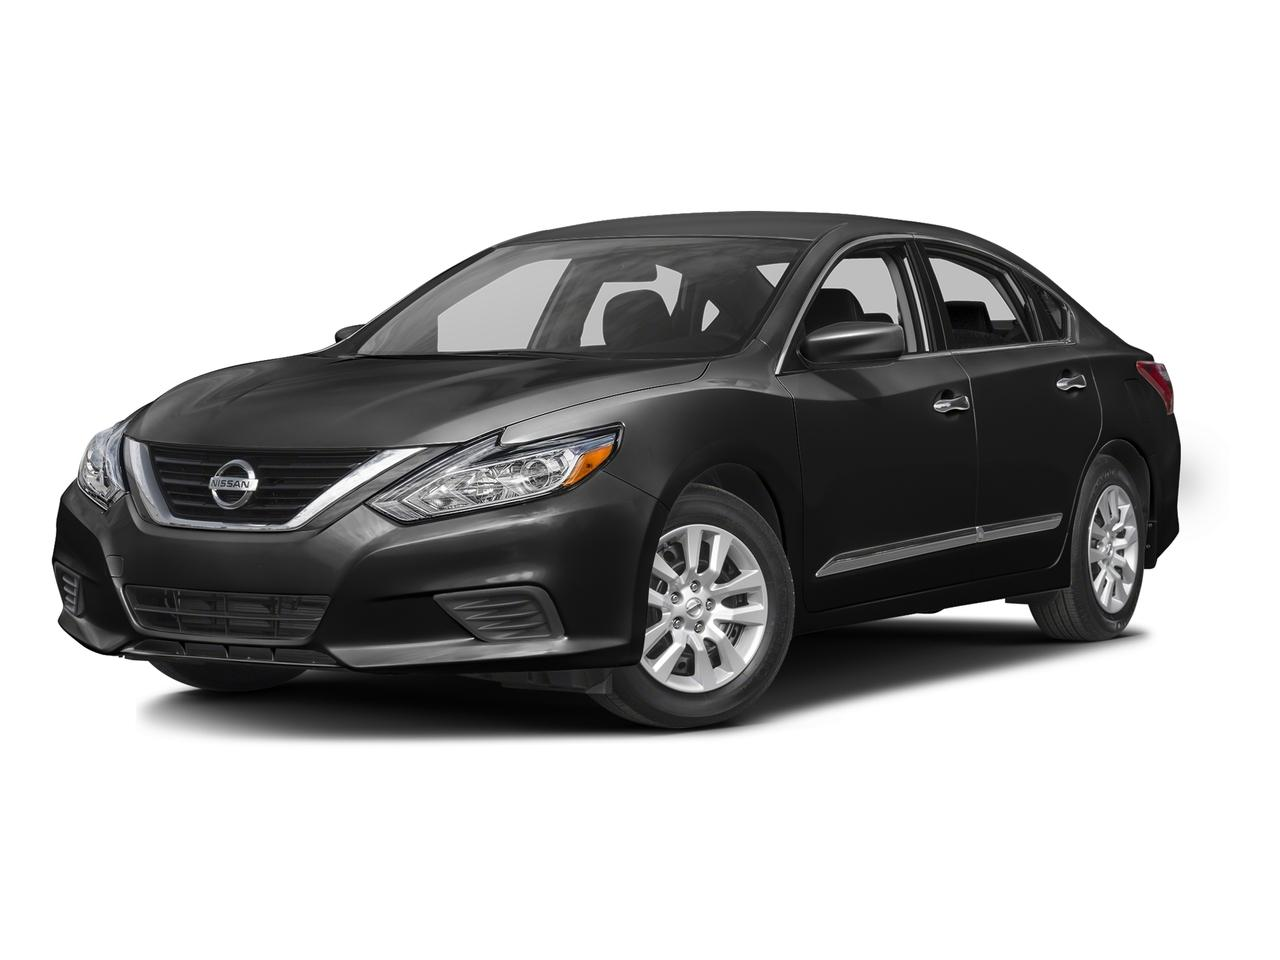 2016 Nissan Altima Vehicle Photo in Trevose, PA 19053